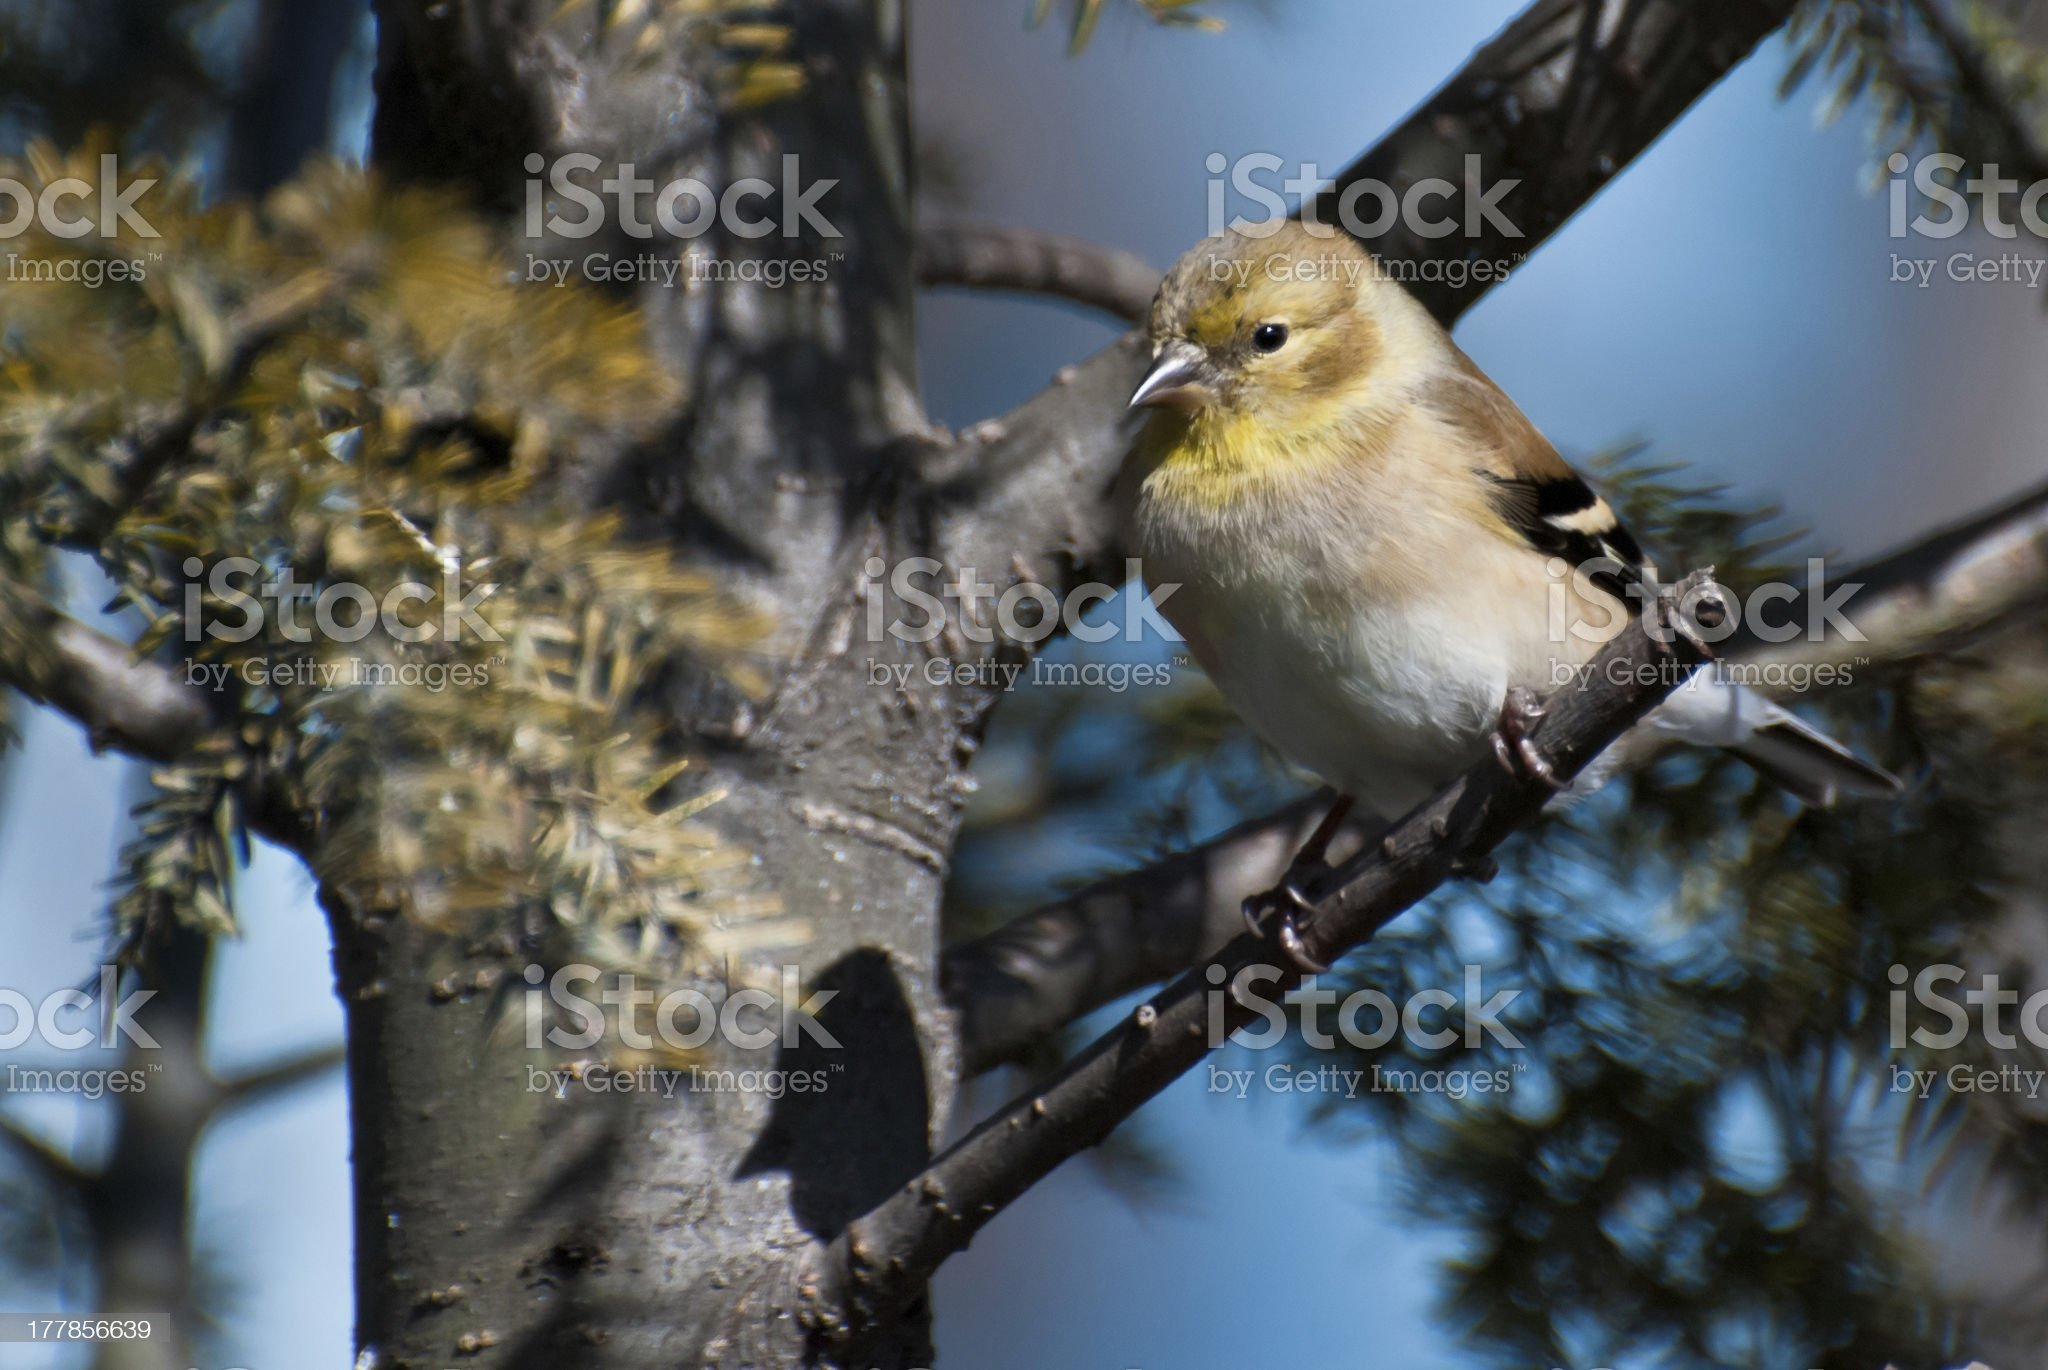 American Goldfinch Perched in a Tree royalty-free stock photo